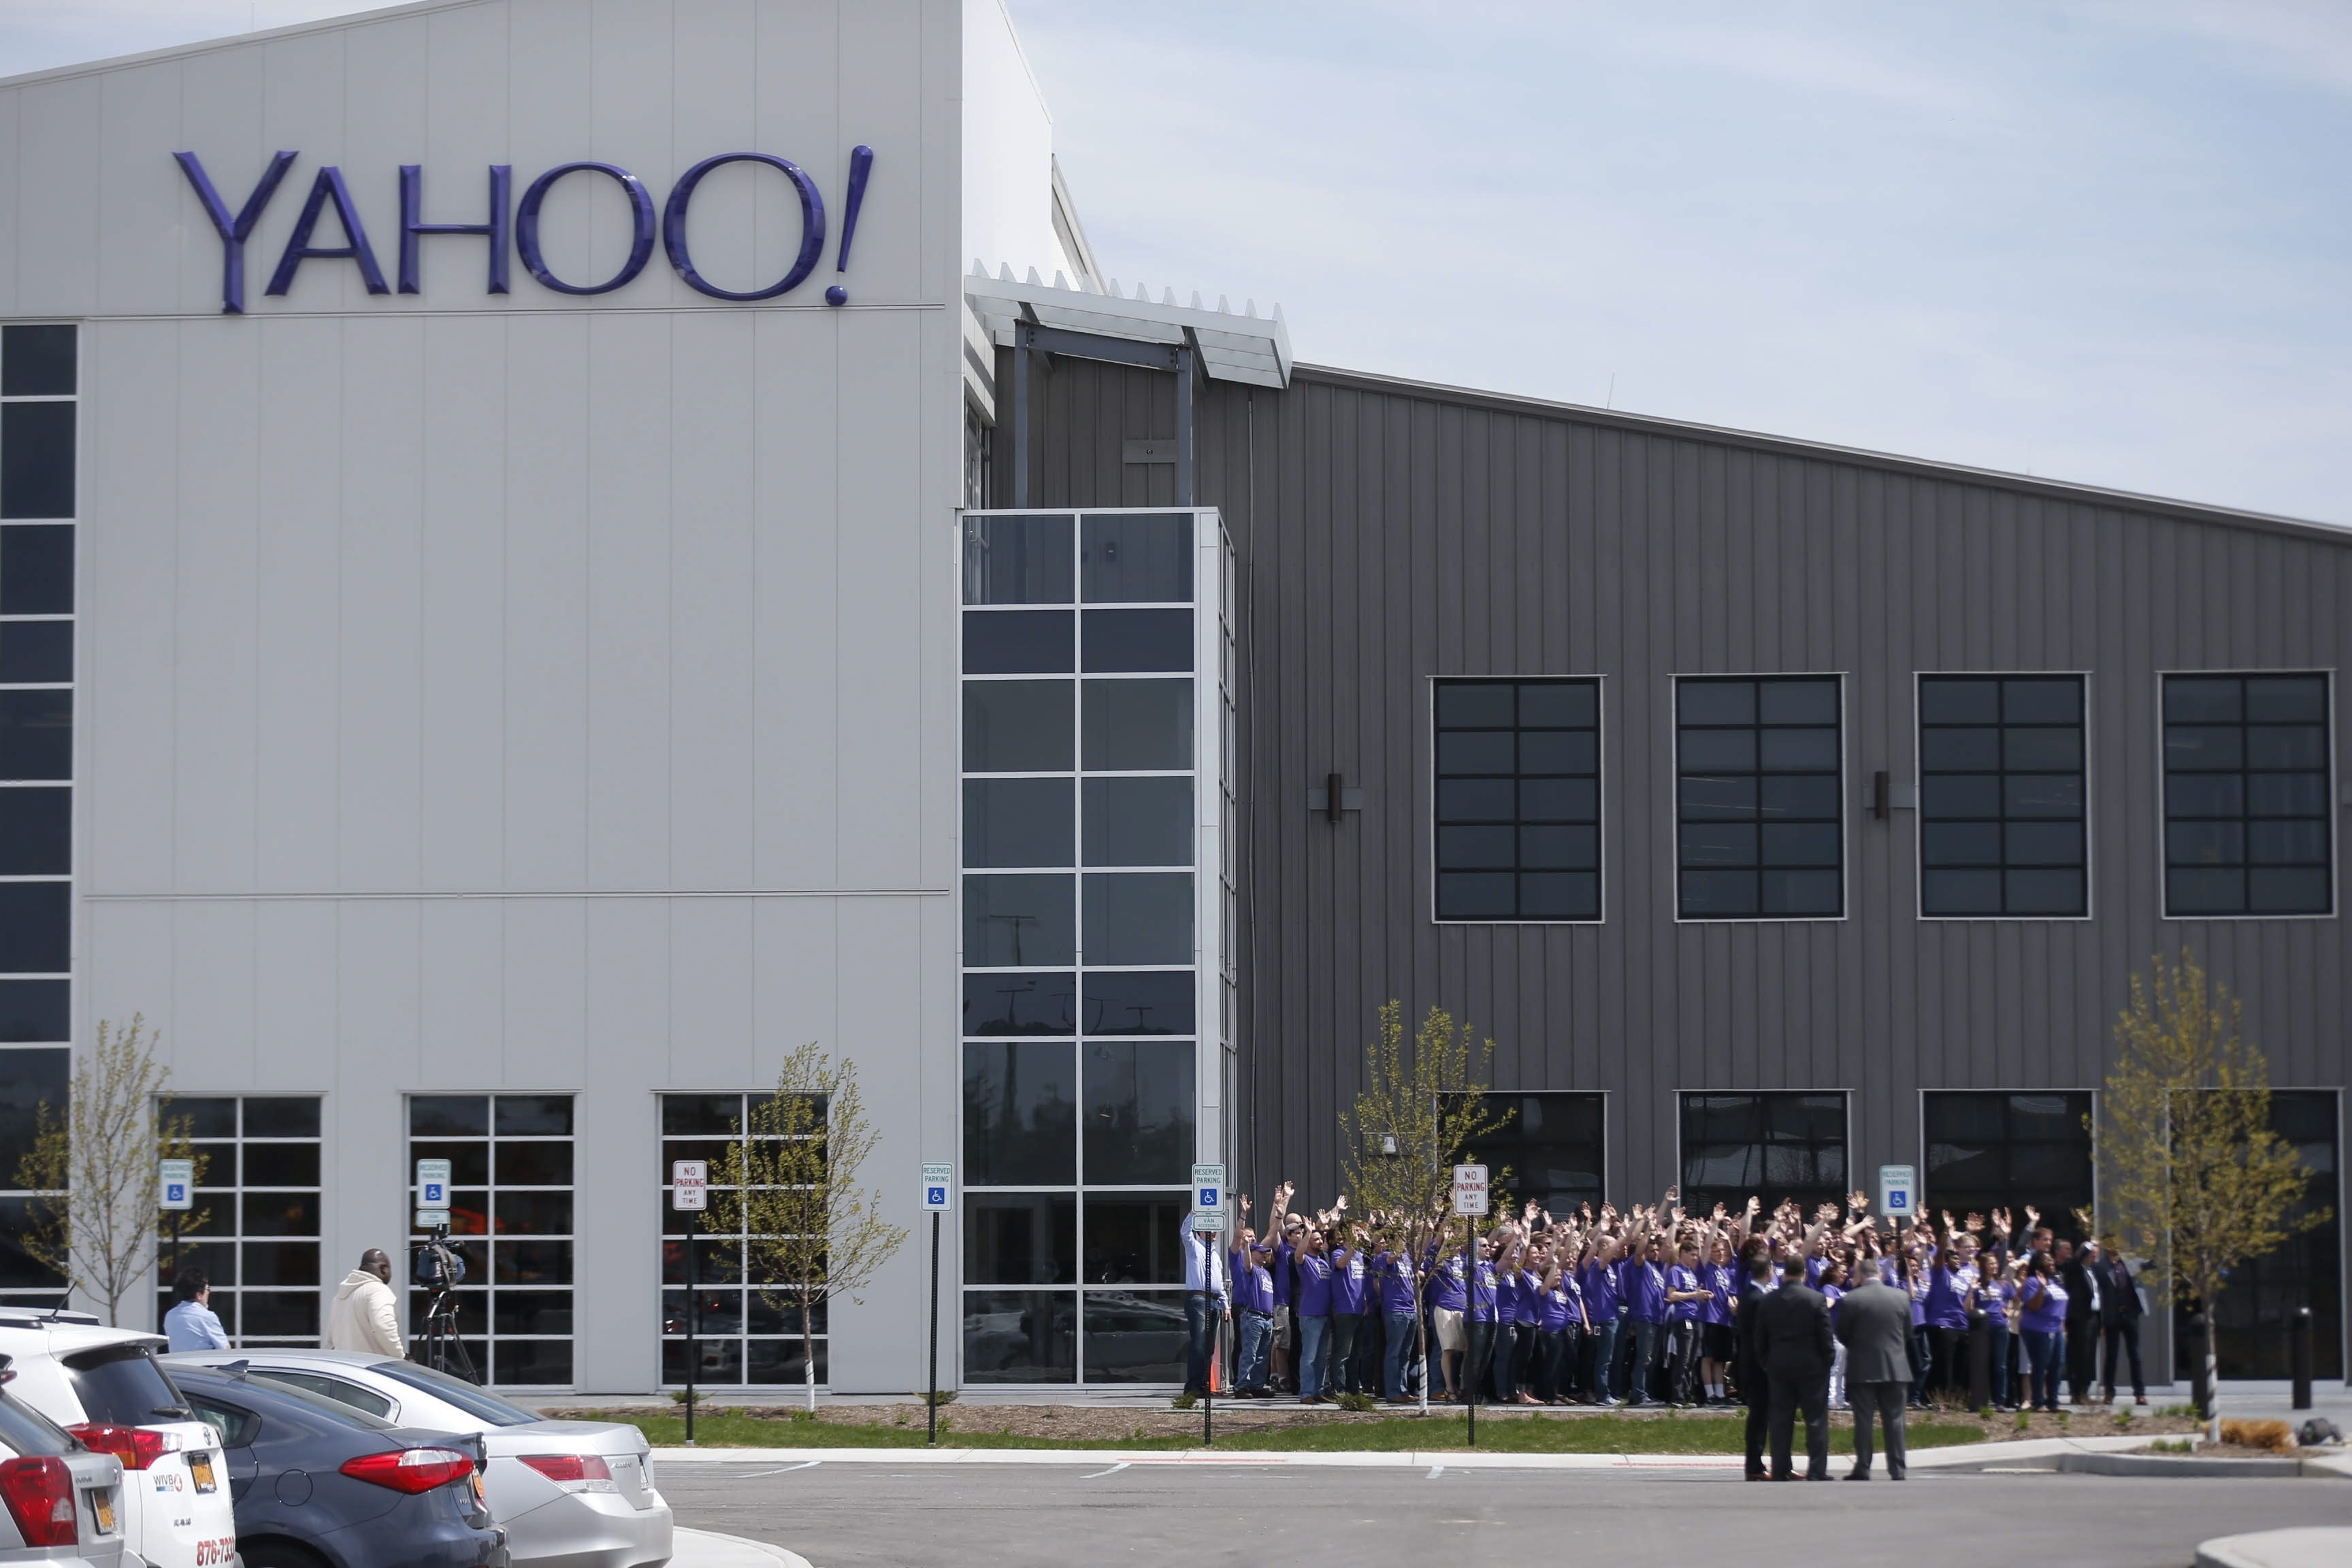 About 200 people are employed at Yahoo's site in Town of Lockport, and it's not yet clear whether a decision to reduce company's workforce by 15 percent will affect any of them.